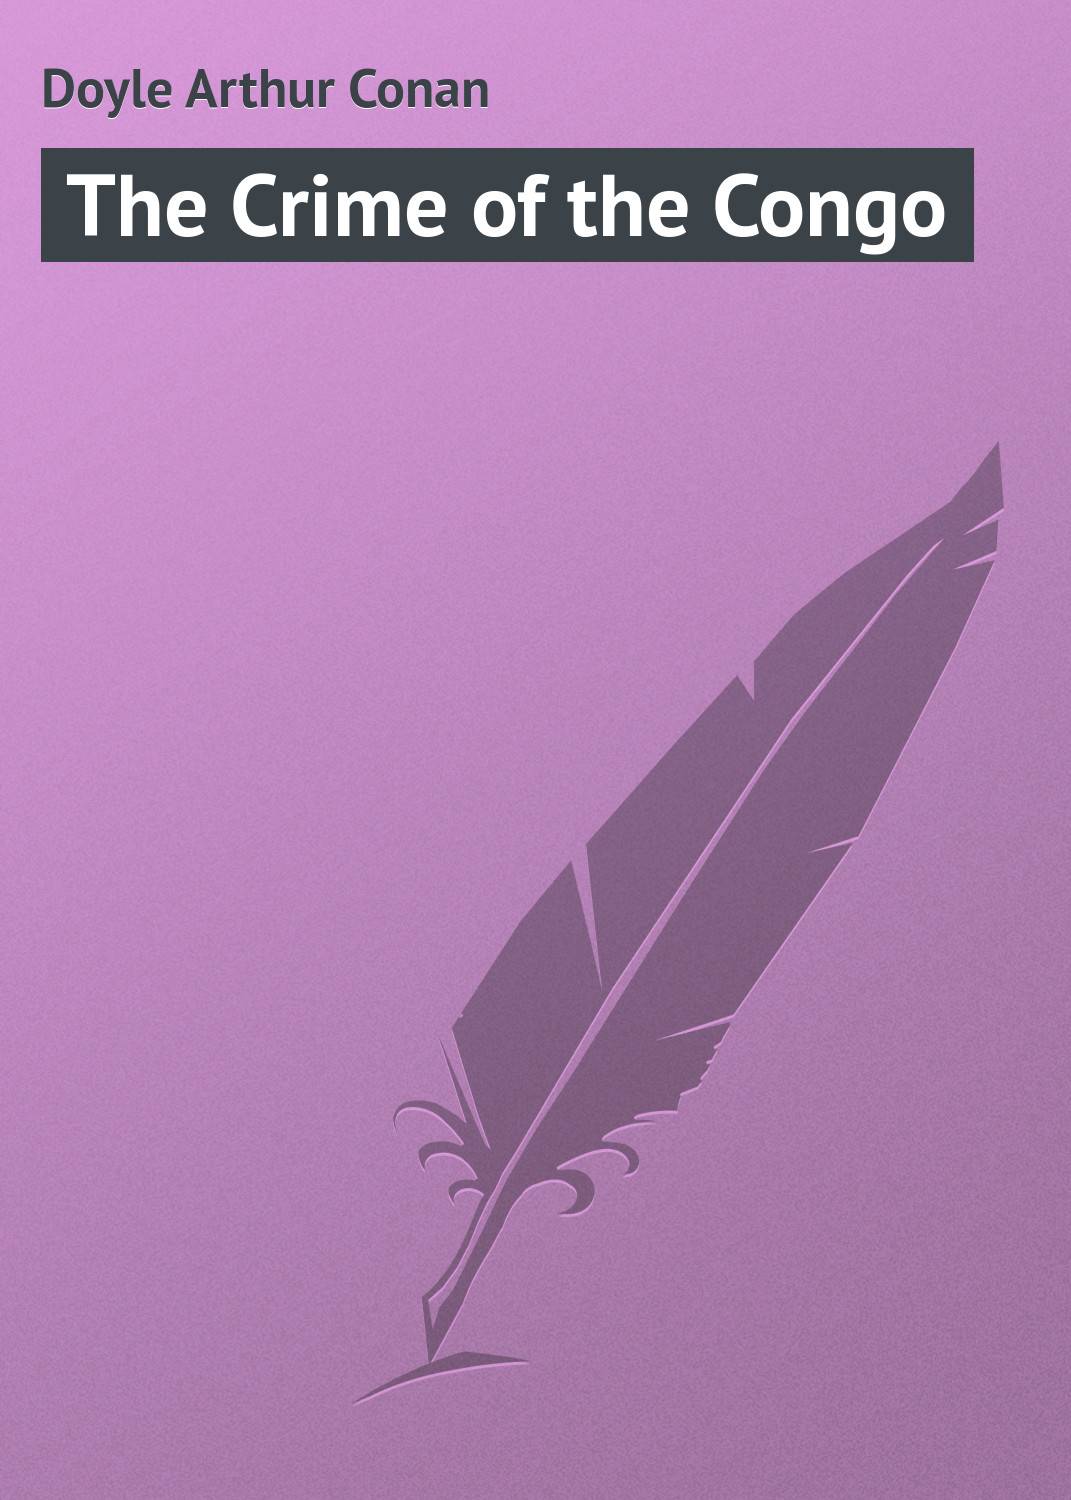 Doyle Arthur Conan The Crime of the Congo arthur conan doyle beyond the city isbn 978 5 521 07178 4